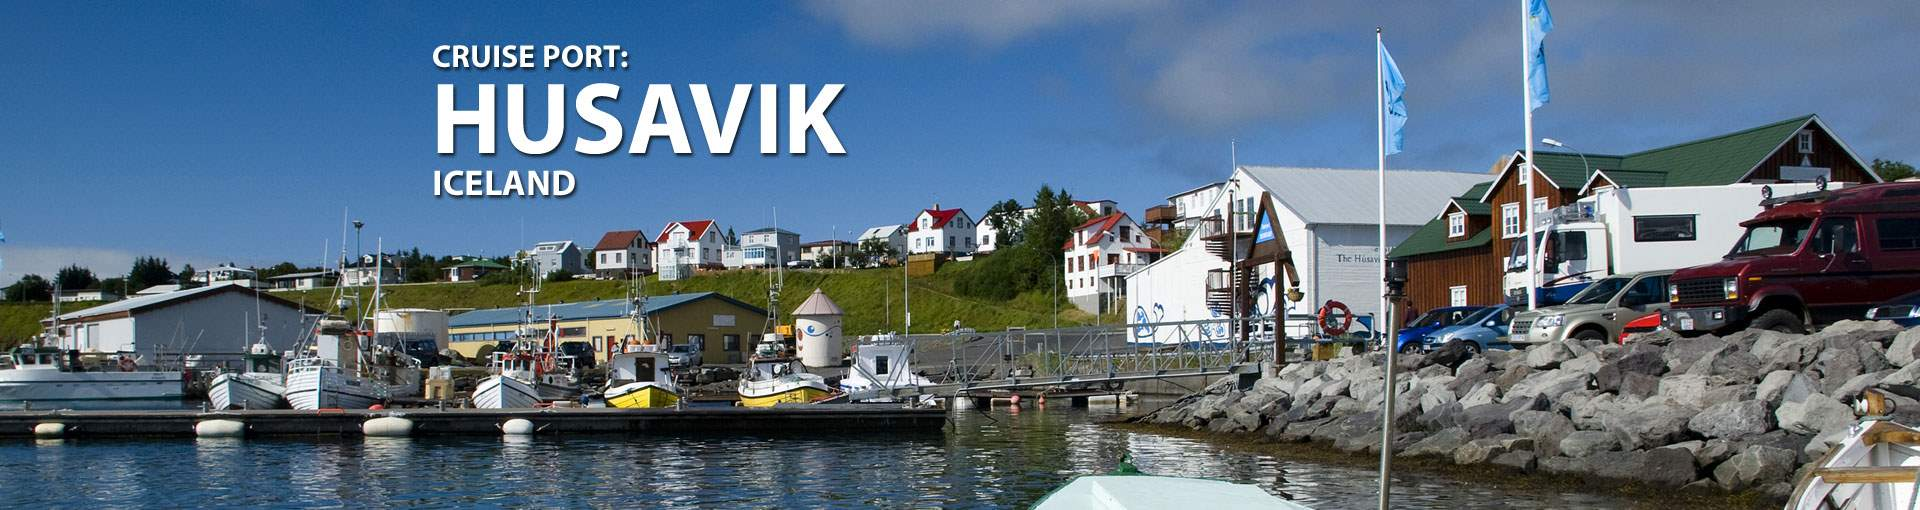 Cruises to Husavik, Iceland